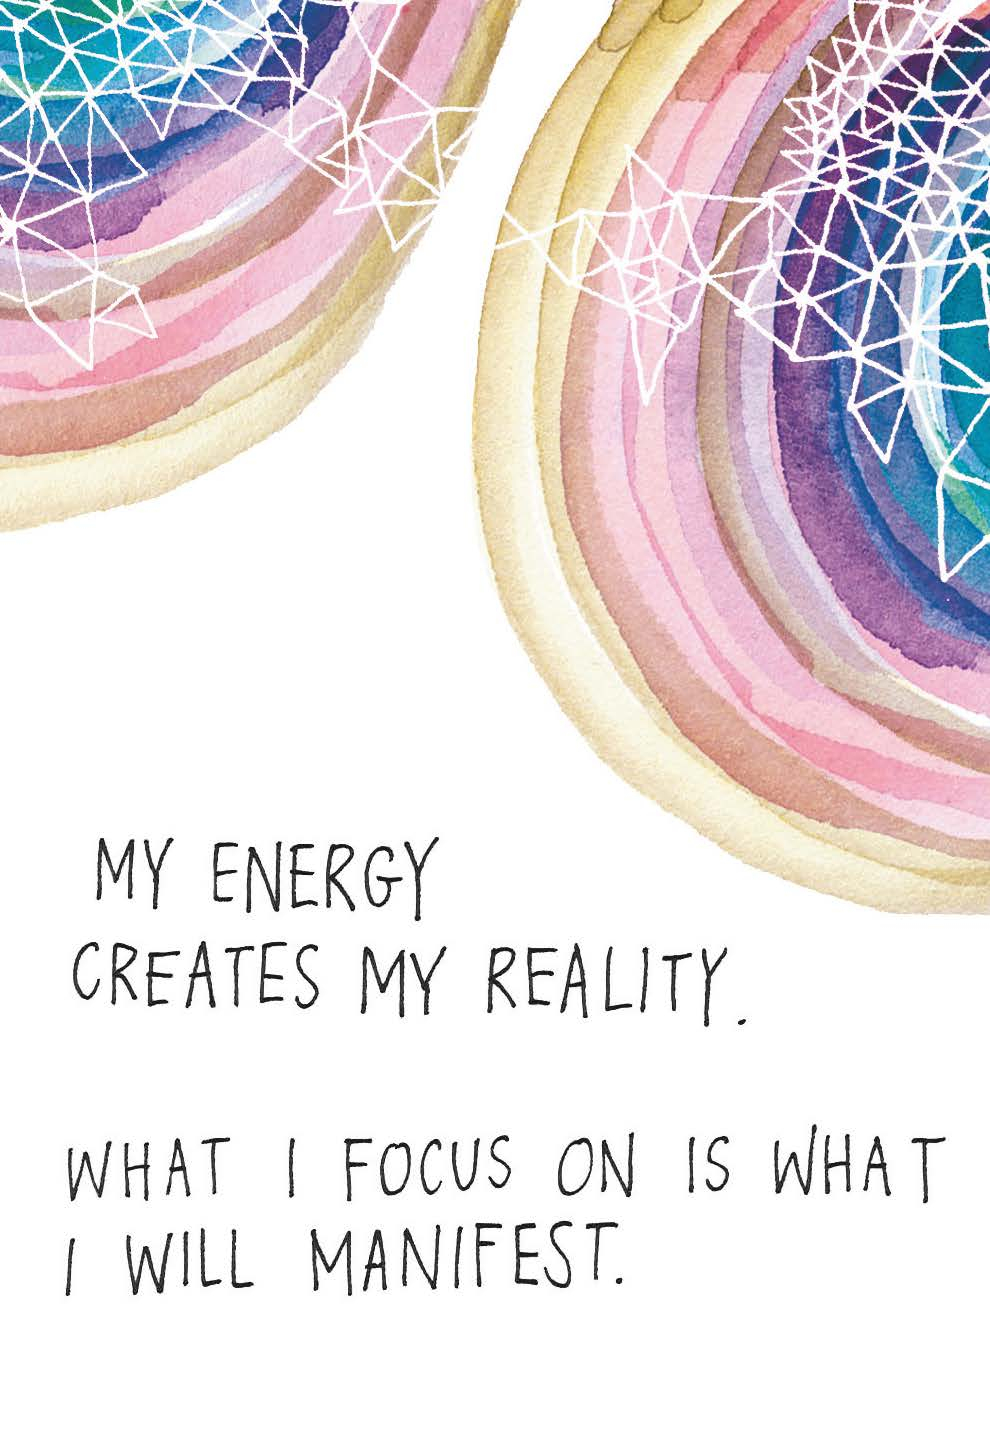 My Energy Creates My Reality. What I Focus On Is What I Manifest | Gabby Bernstein | The Universe Has Your Back card deck